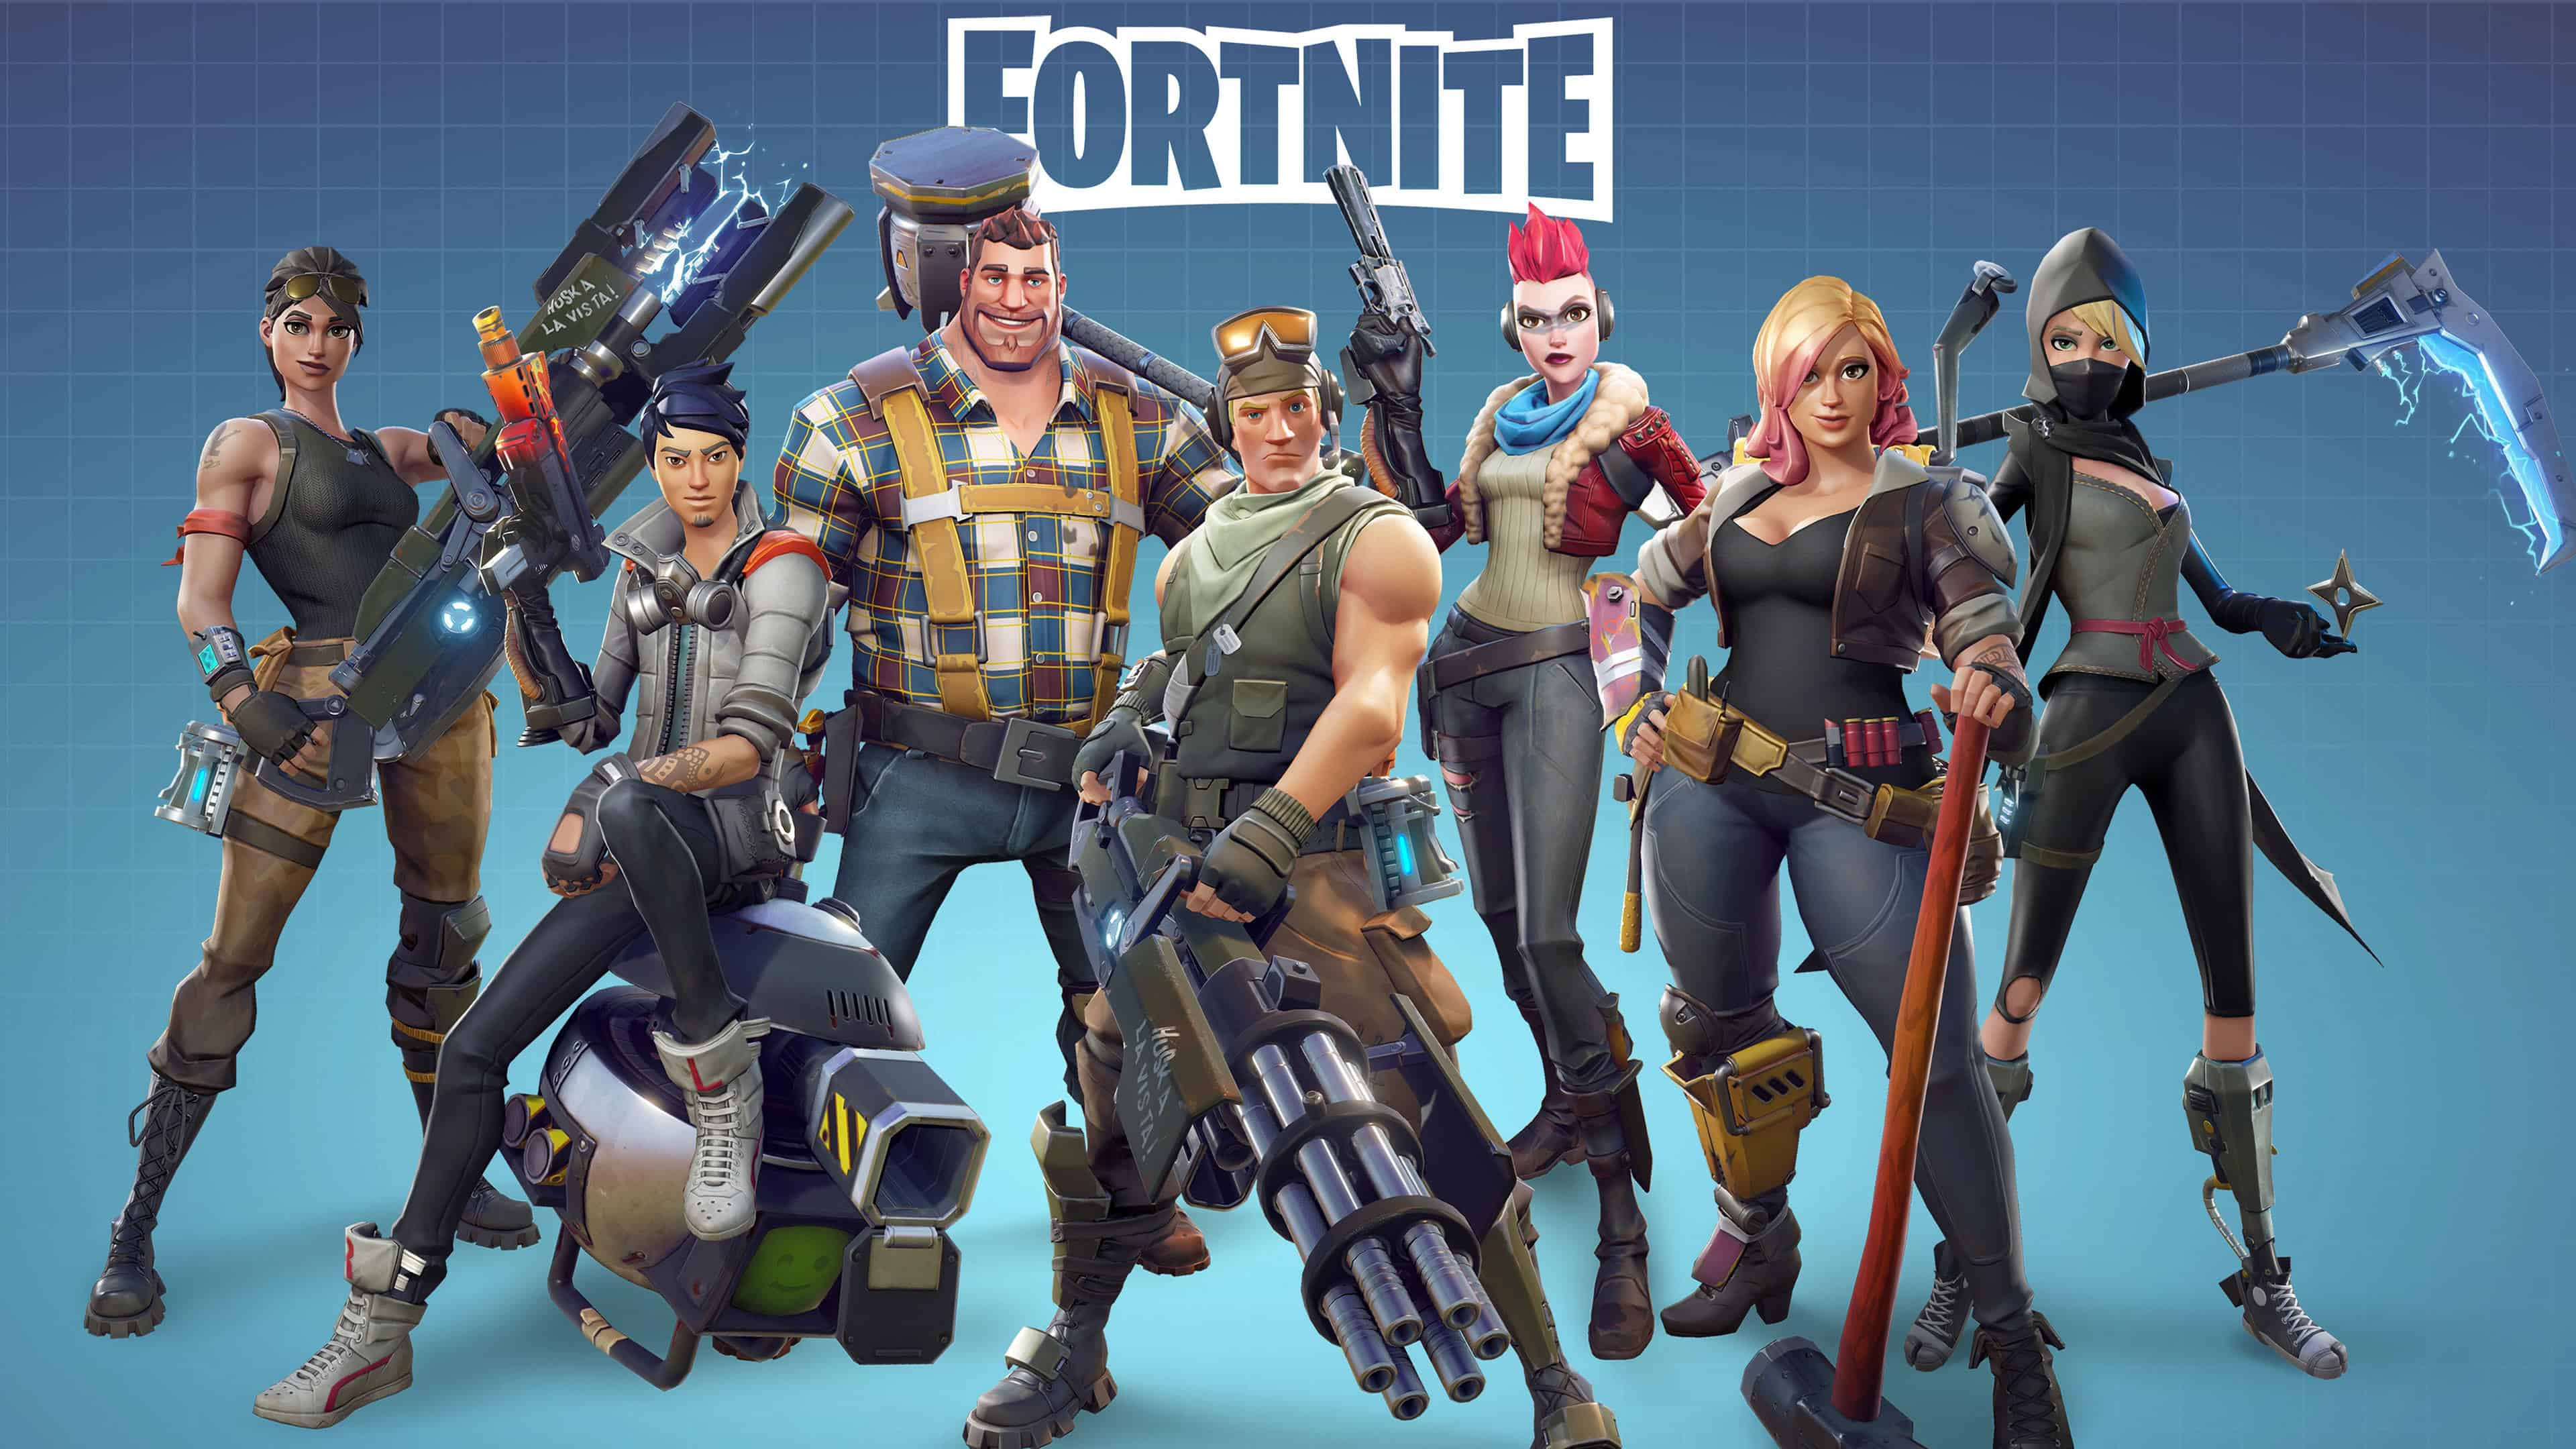 Fortnite UHD 4K Wallpaper | Pixelz